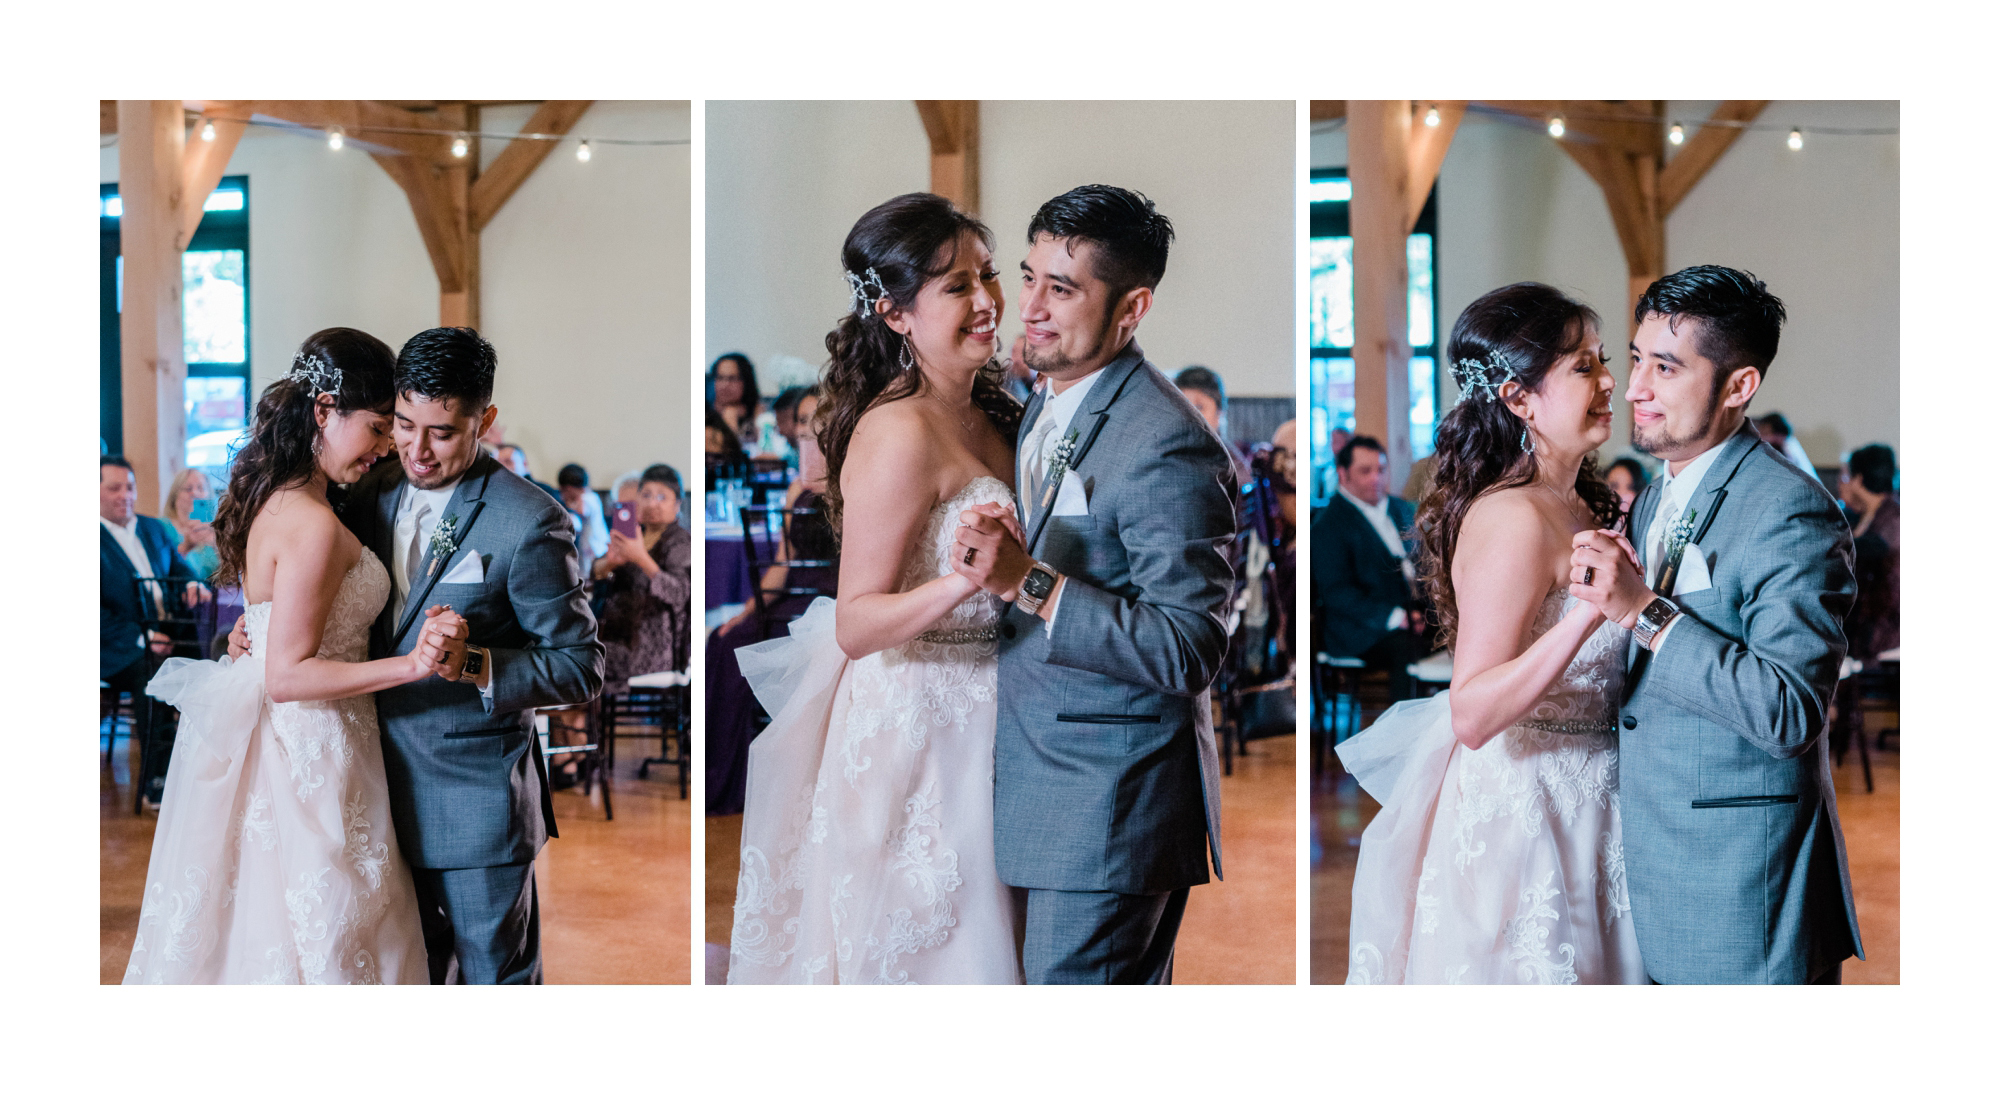 magnolia-halle-country-wedding-first-dance-photography.jpg